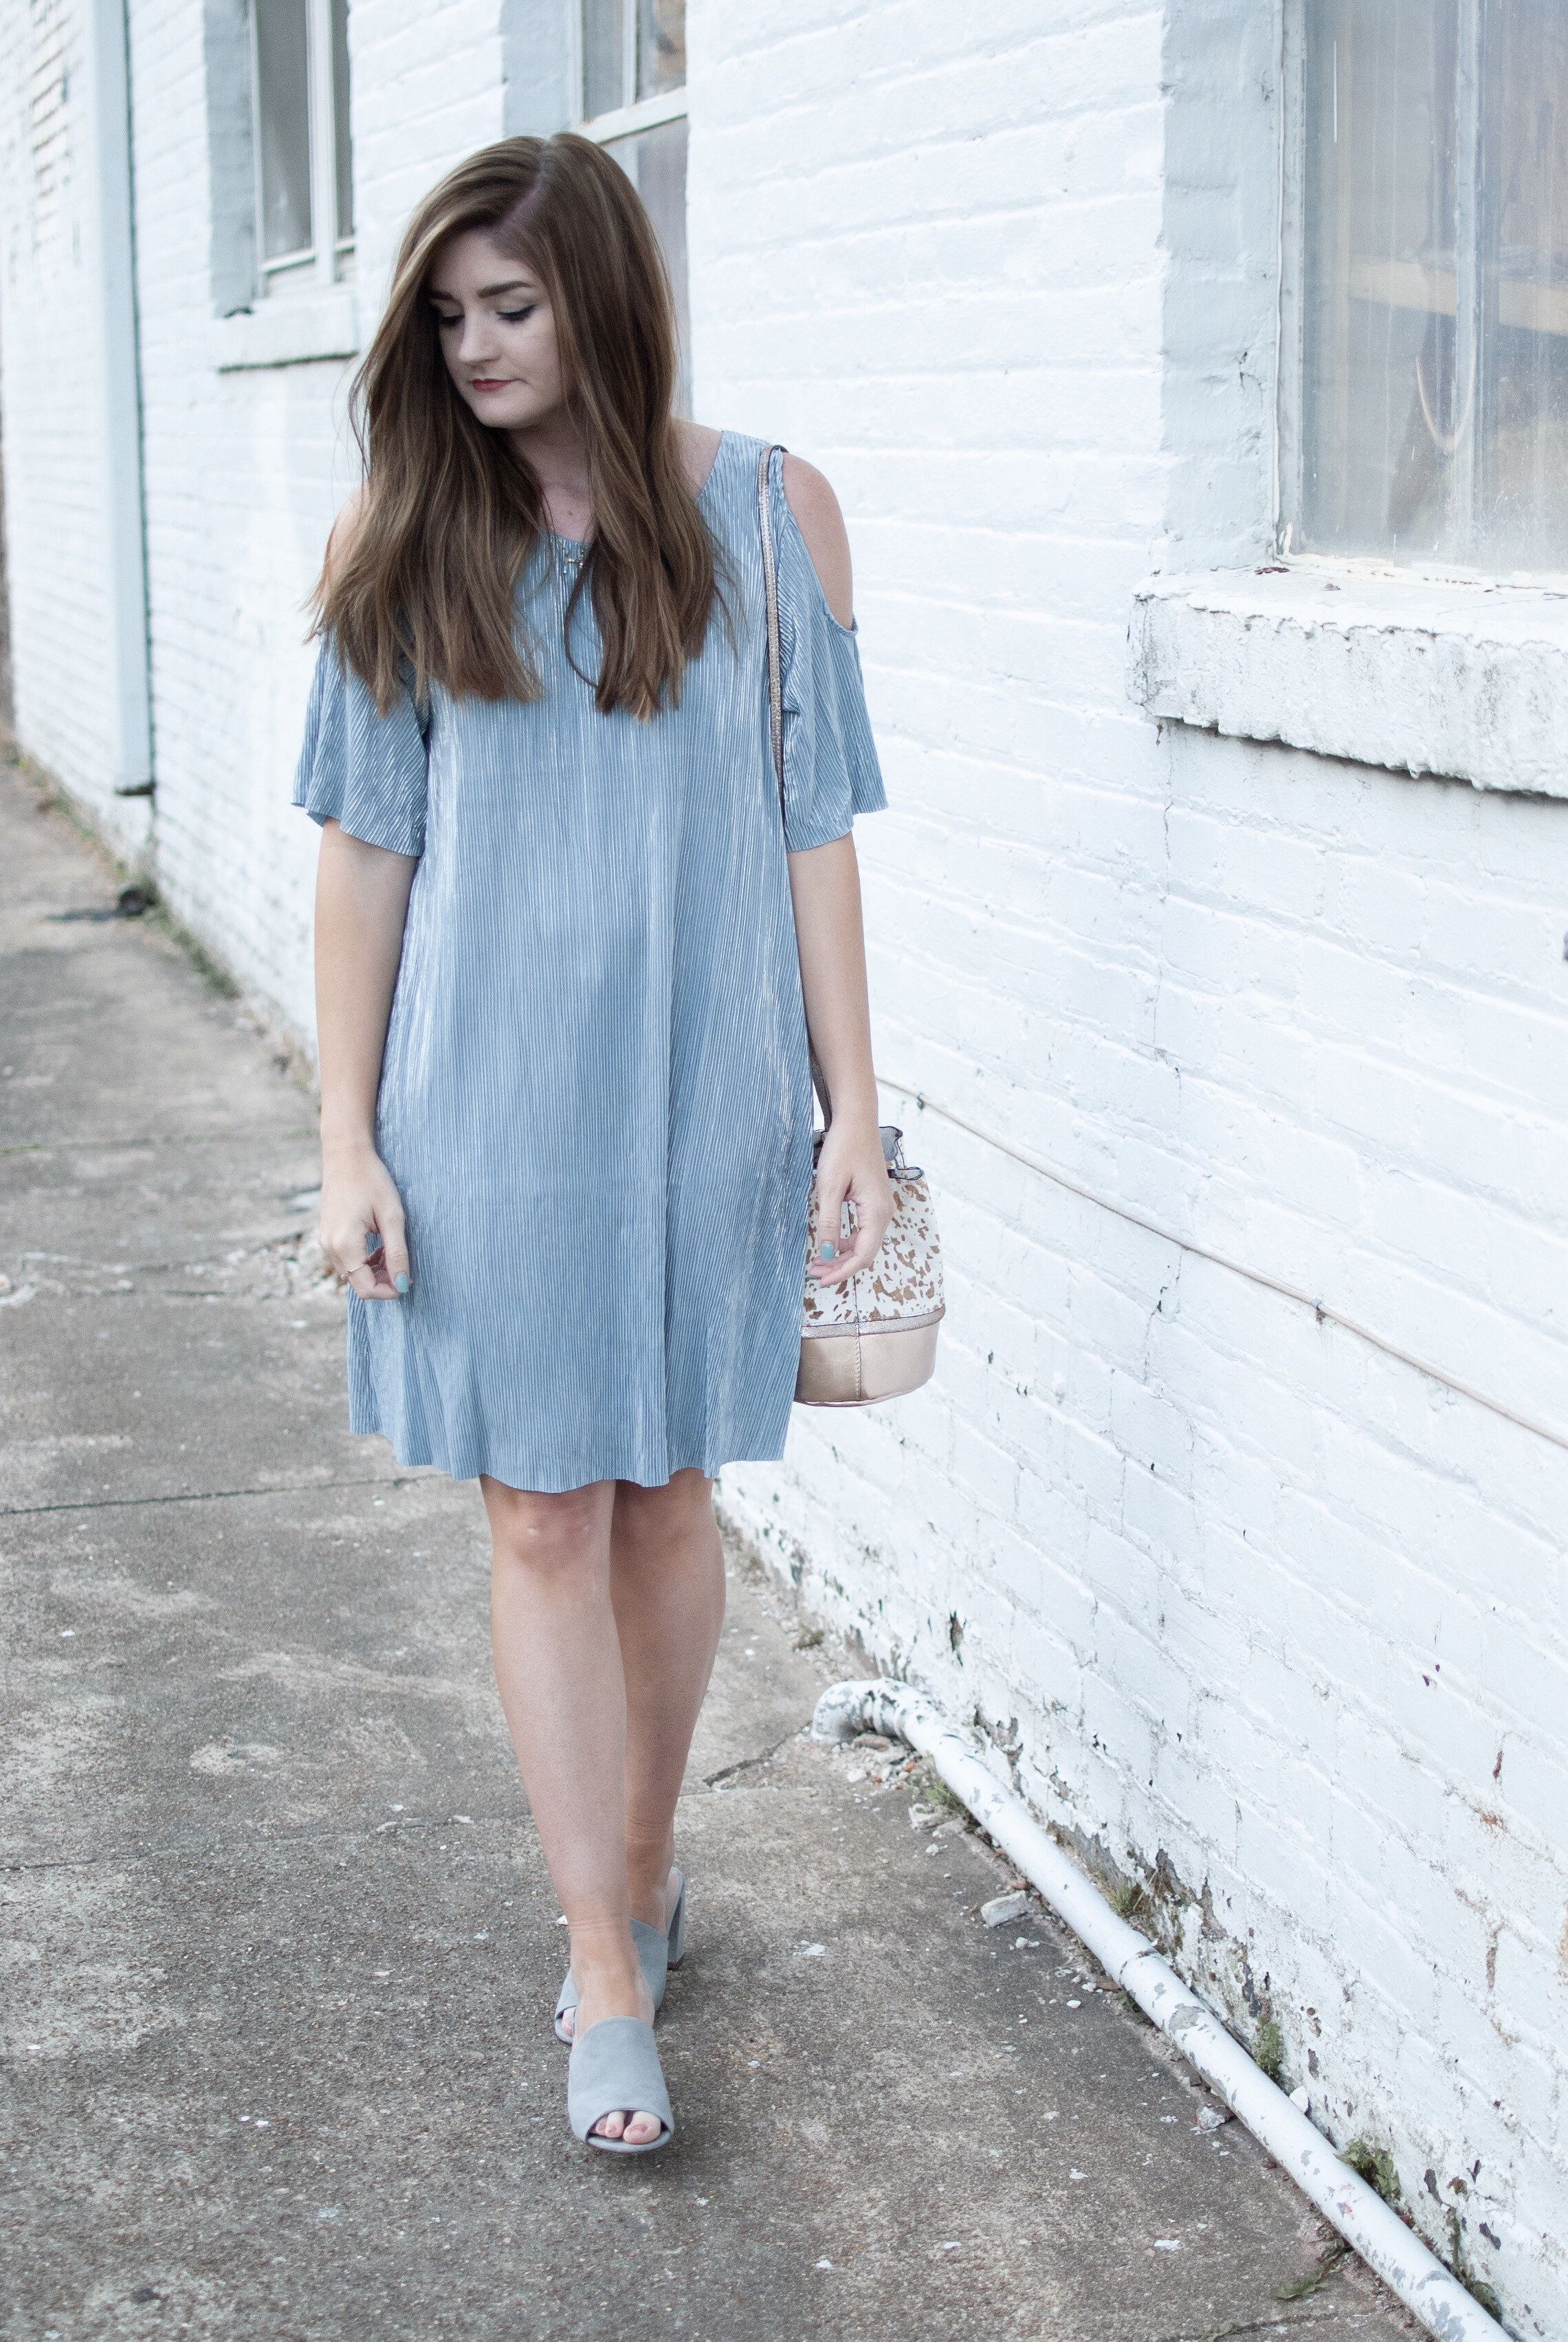 Misty metallic blue dress